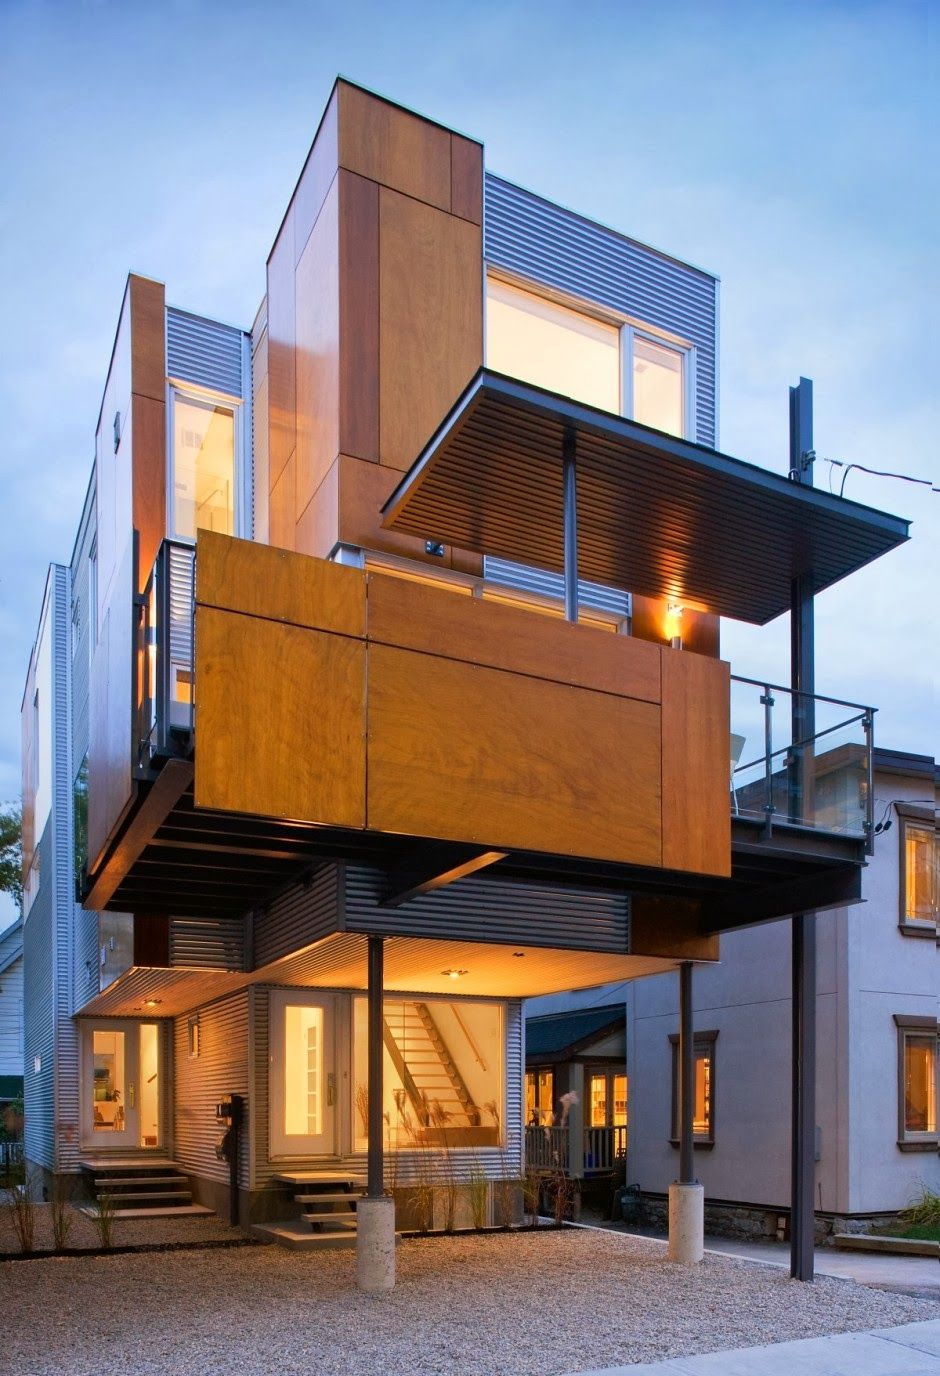 Phenomenal ultra modern european house, wood and concrete. I have ...